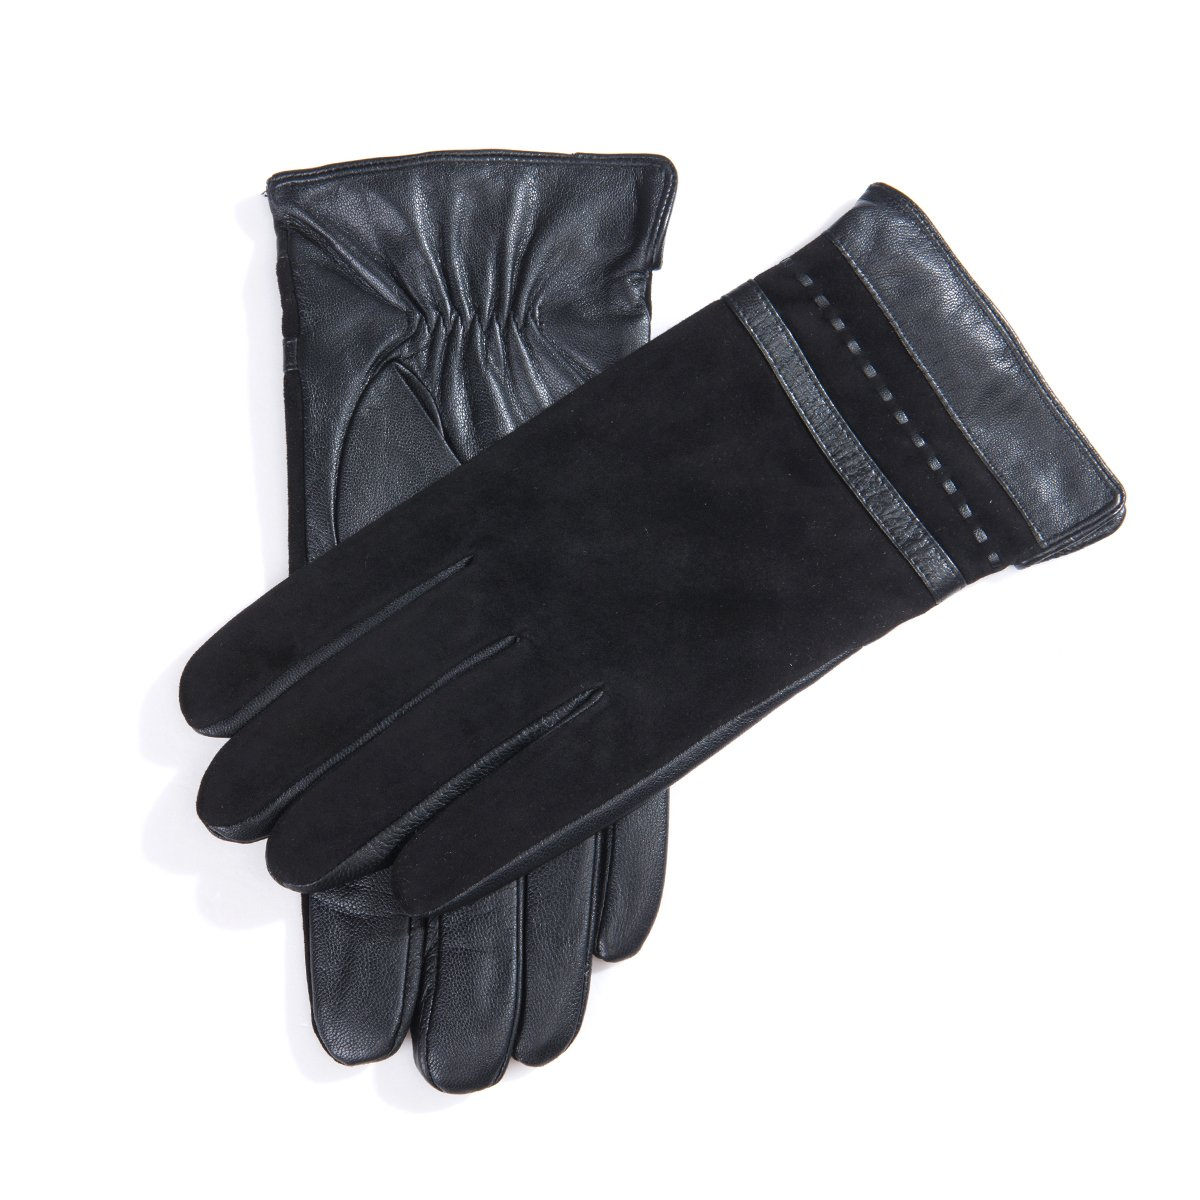 MATSU Business Men Winter Warm Leather and Sheep Suede with Zip Gloves M1082 (M, Black-Long Fleece)